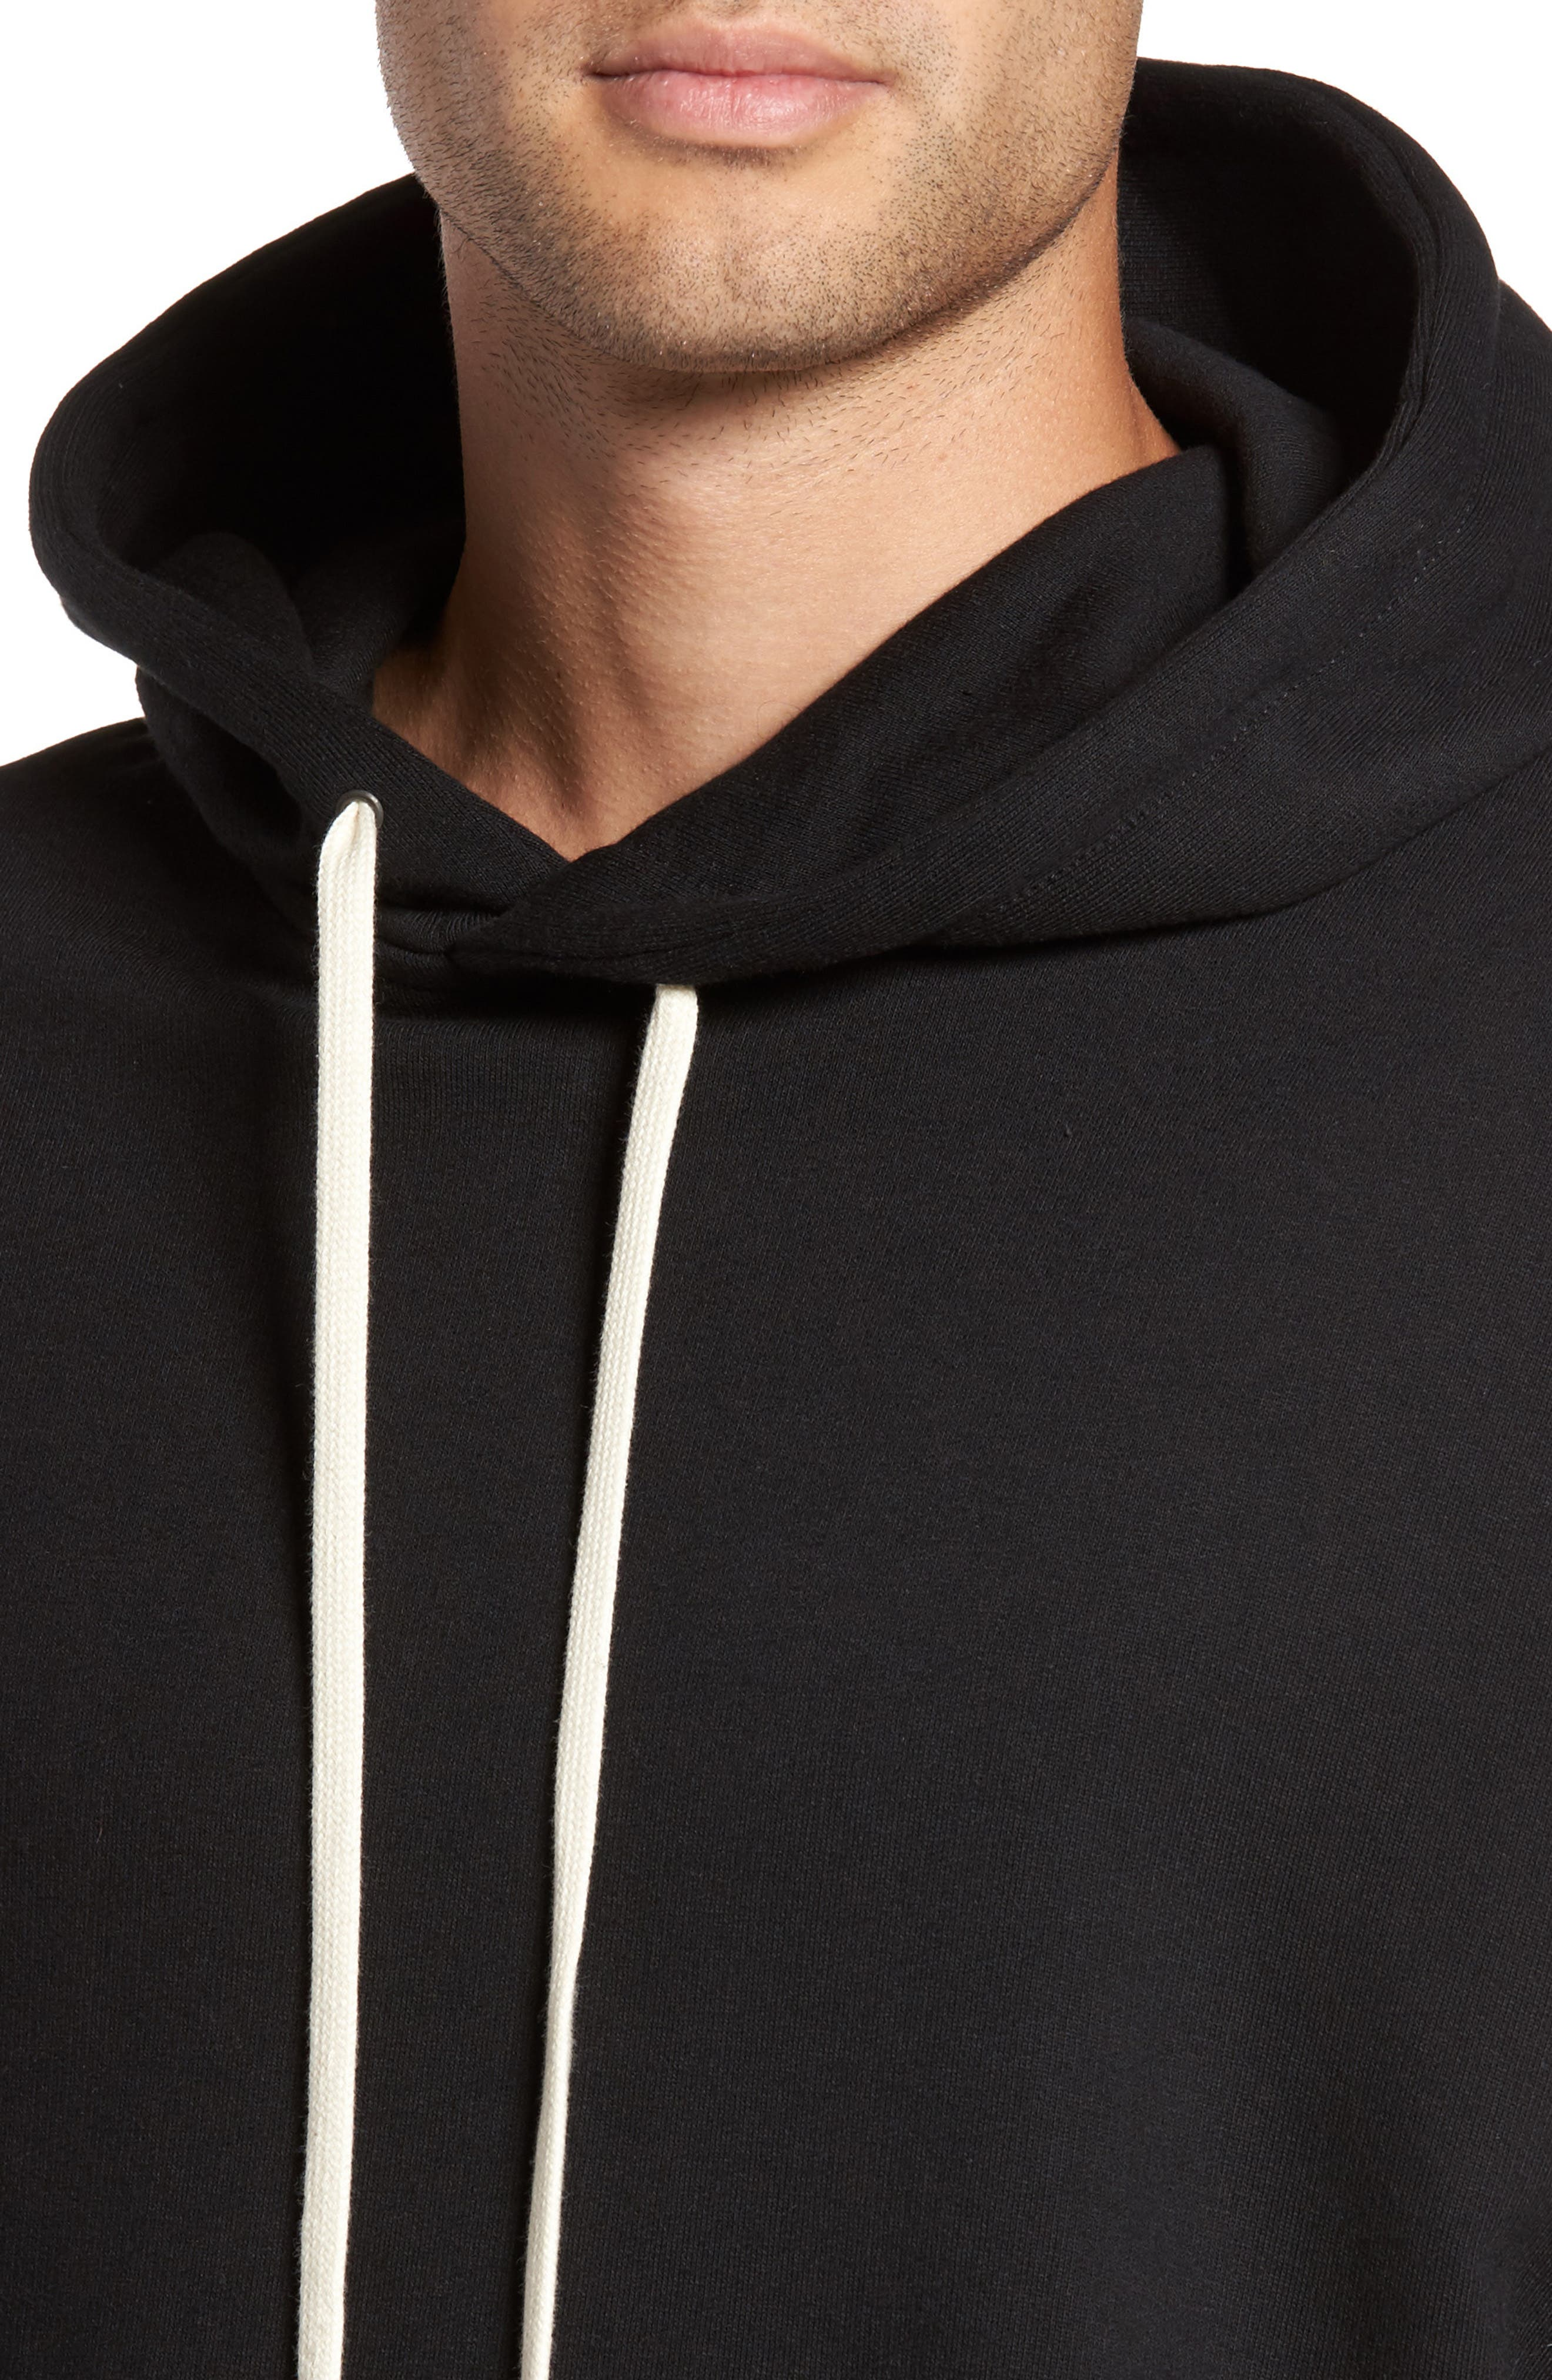 Relaxed Fit Hoodie,                             Alternate thumbnail 4, color,